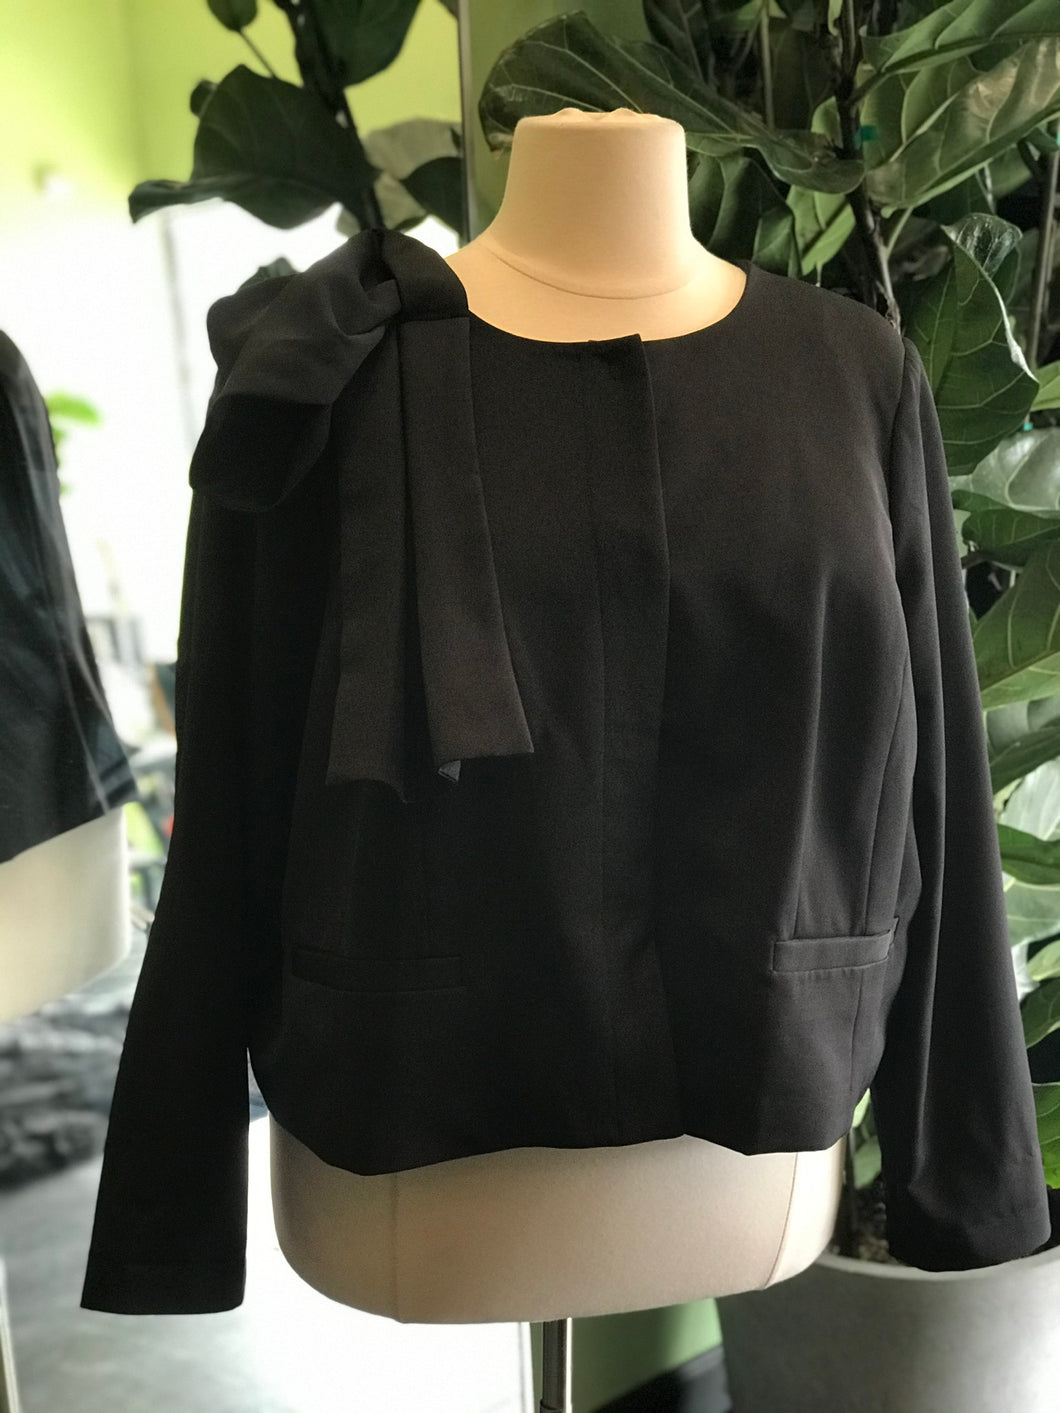 Black Blazer with Abstract Bow Detail on Shoulder by Eloquii, Size 26